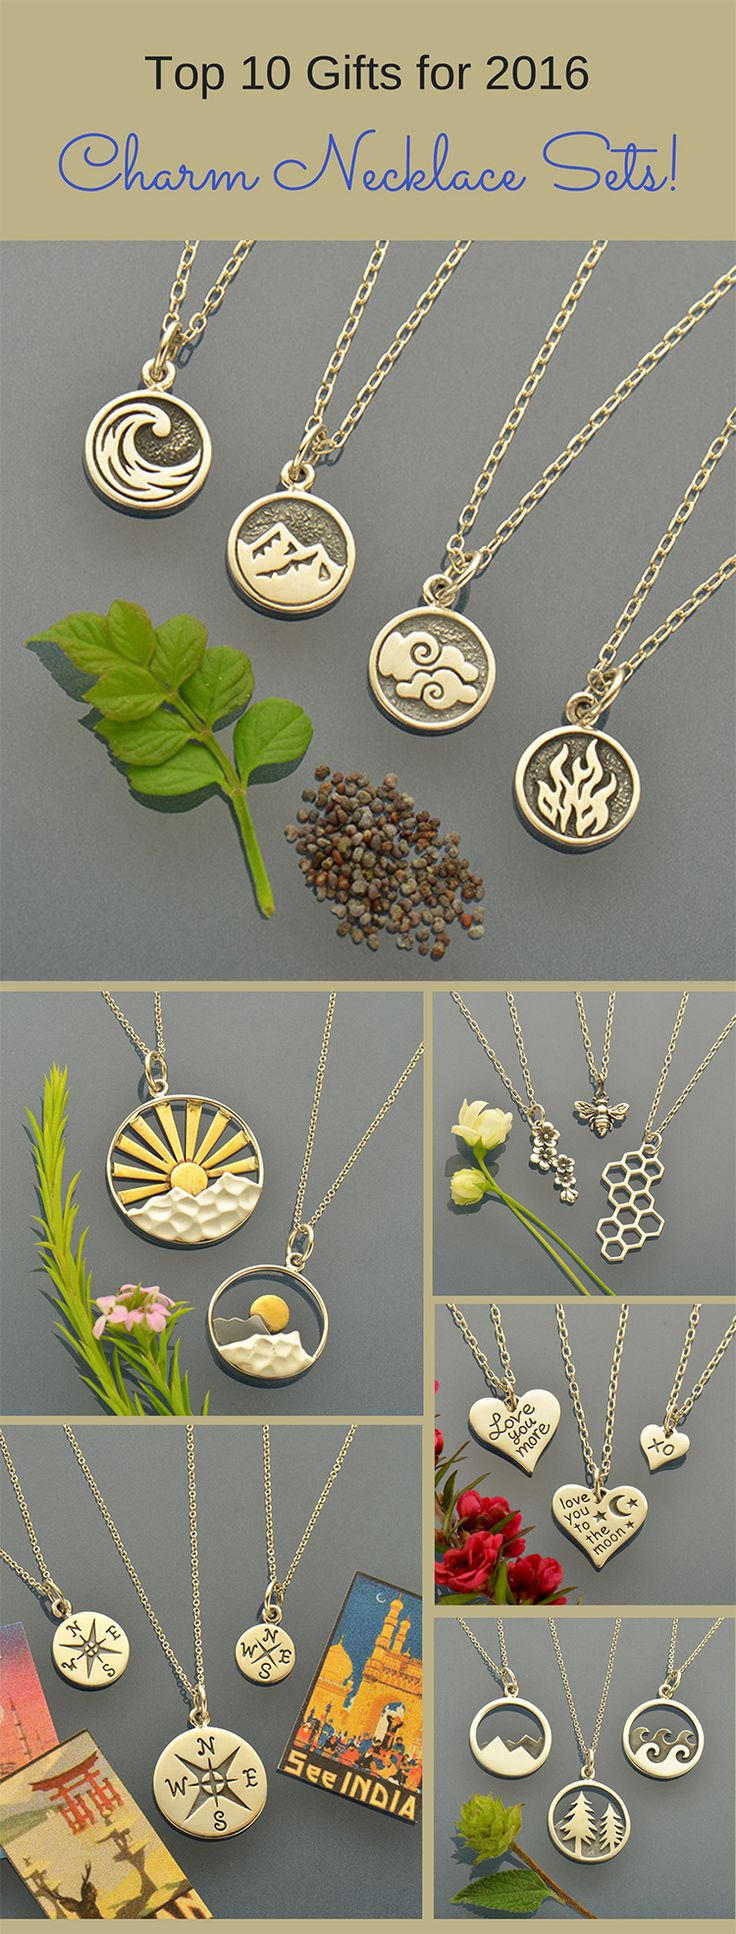 These Charm Necklace Sets are the perfect answer for gift giving this holiday season. Find something for everyone and cross names off of your list. These sets have symbolic meaning representing friendship, generational love and shared passions. Click to shop the entire collection.